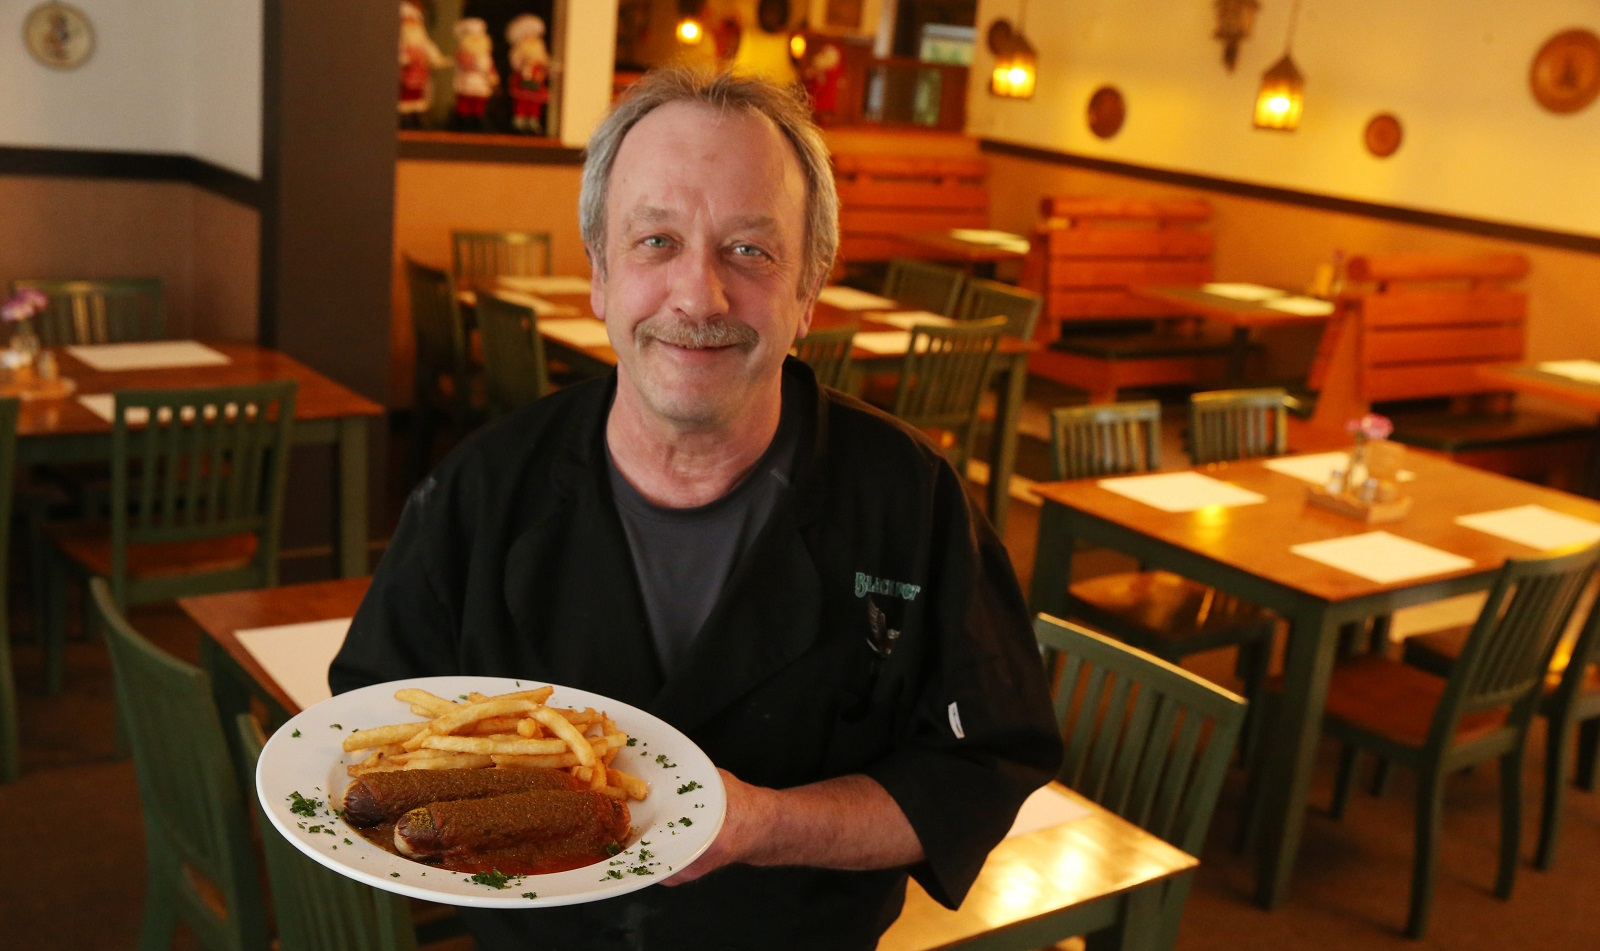 Black Forest Adler owner Gerhard Braun presents the restaurant's curry sausage in 2016. (Sharon Cantillon/News file photo)